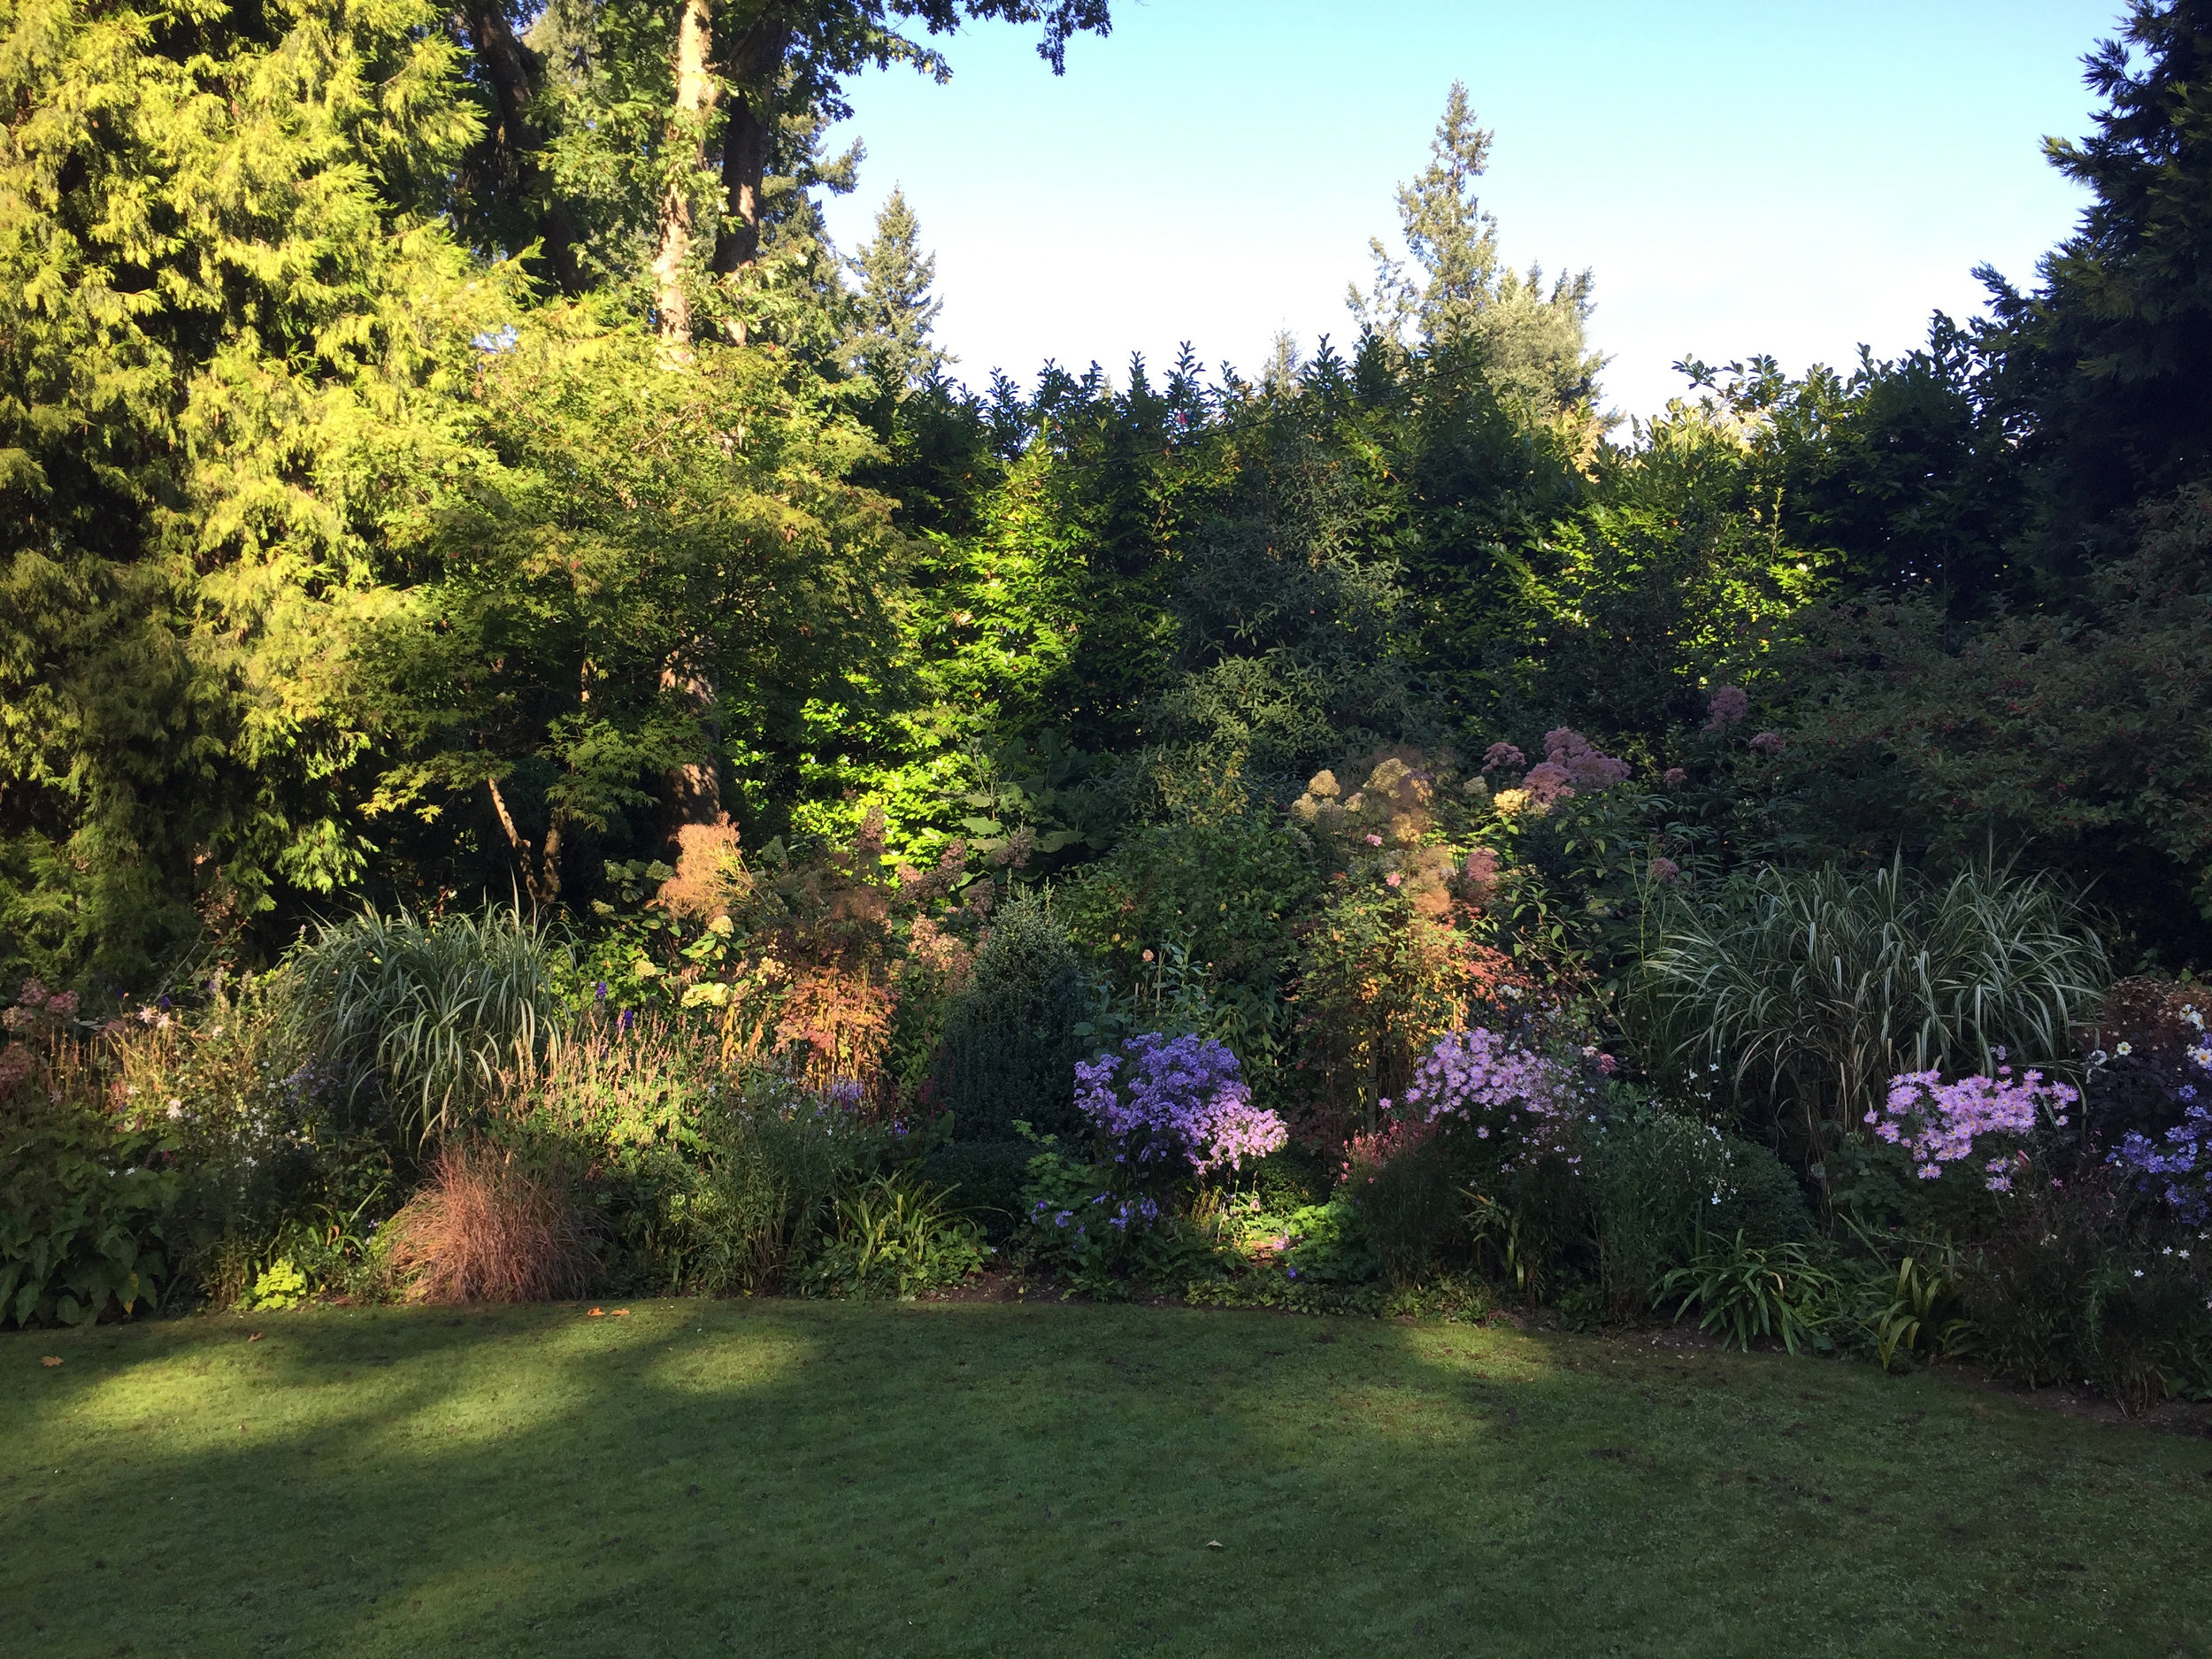 A Mixed Border with Fall Asters